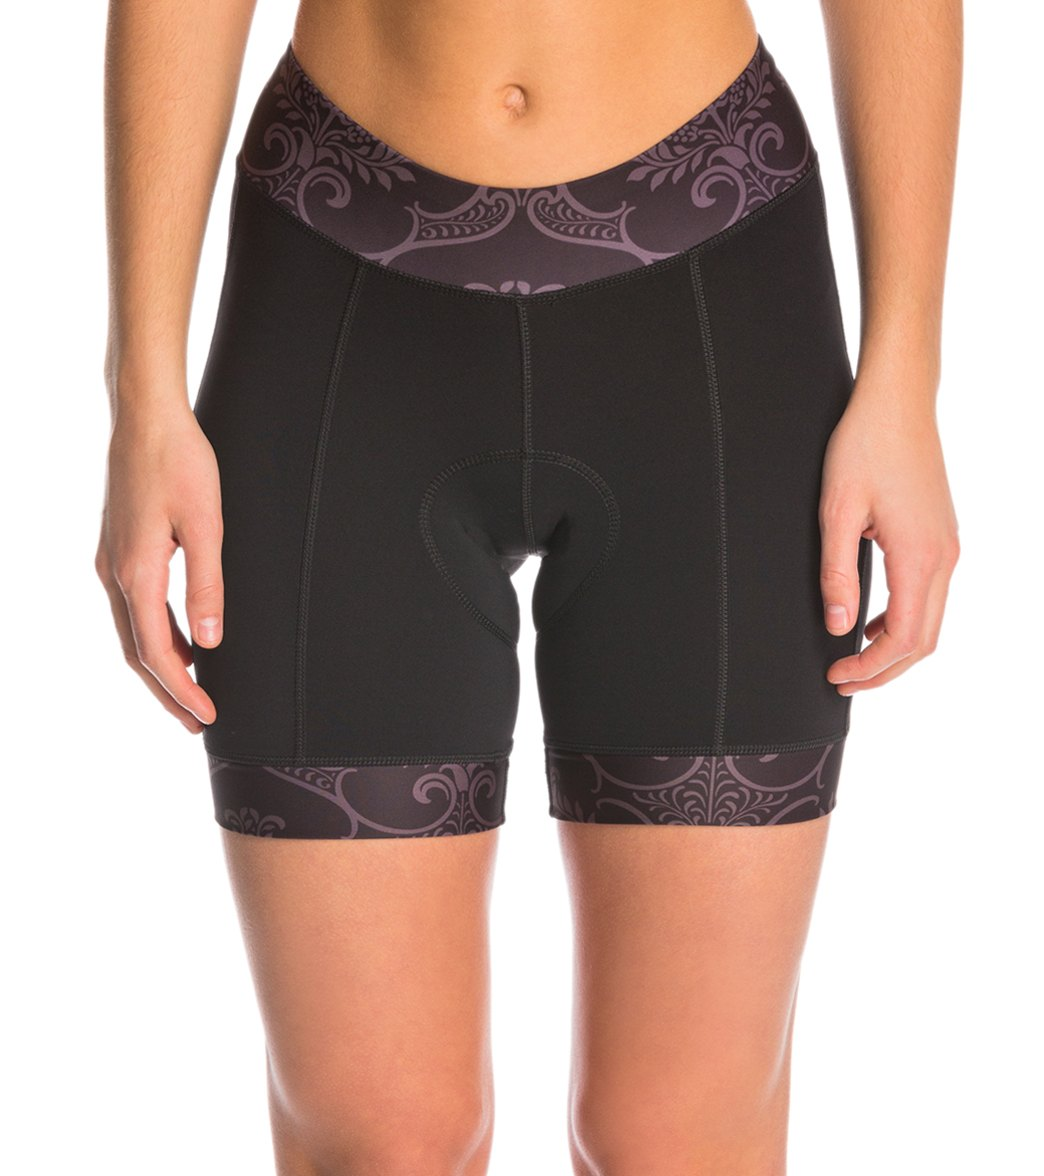 32f5c9f1c Shebeest Women s Triple S Ultimo Go For Baroque Cycling Shorts at ...